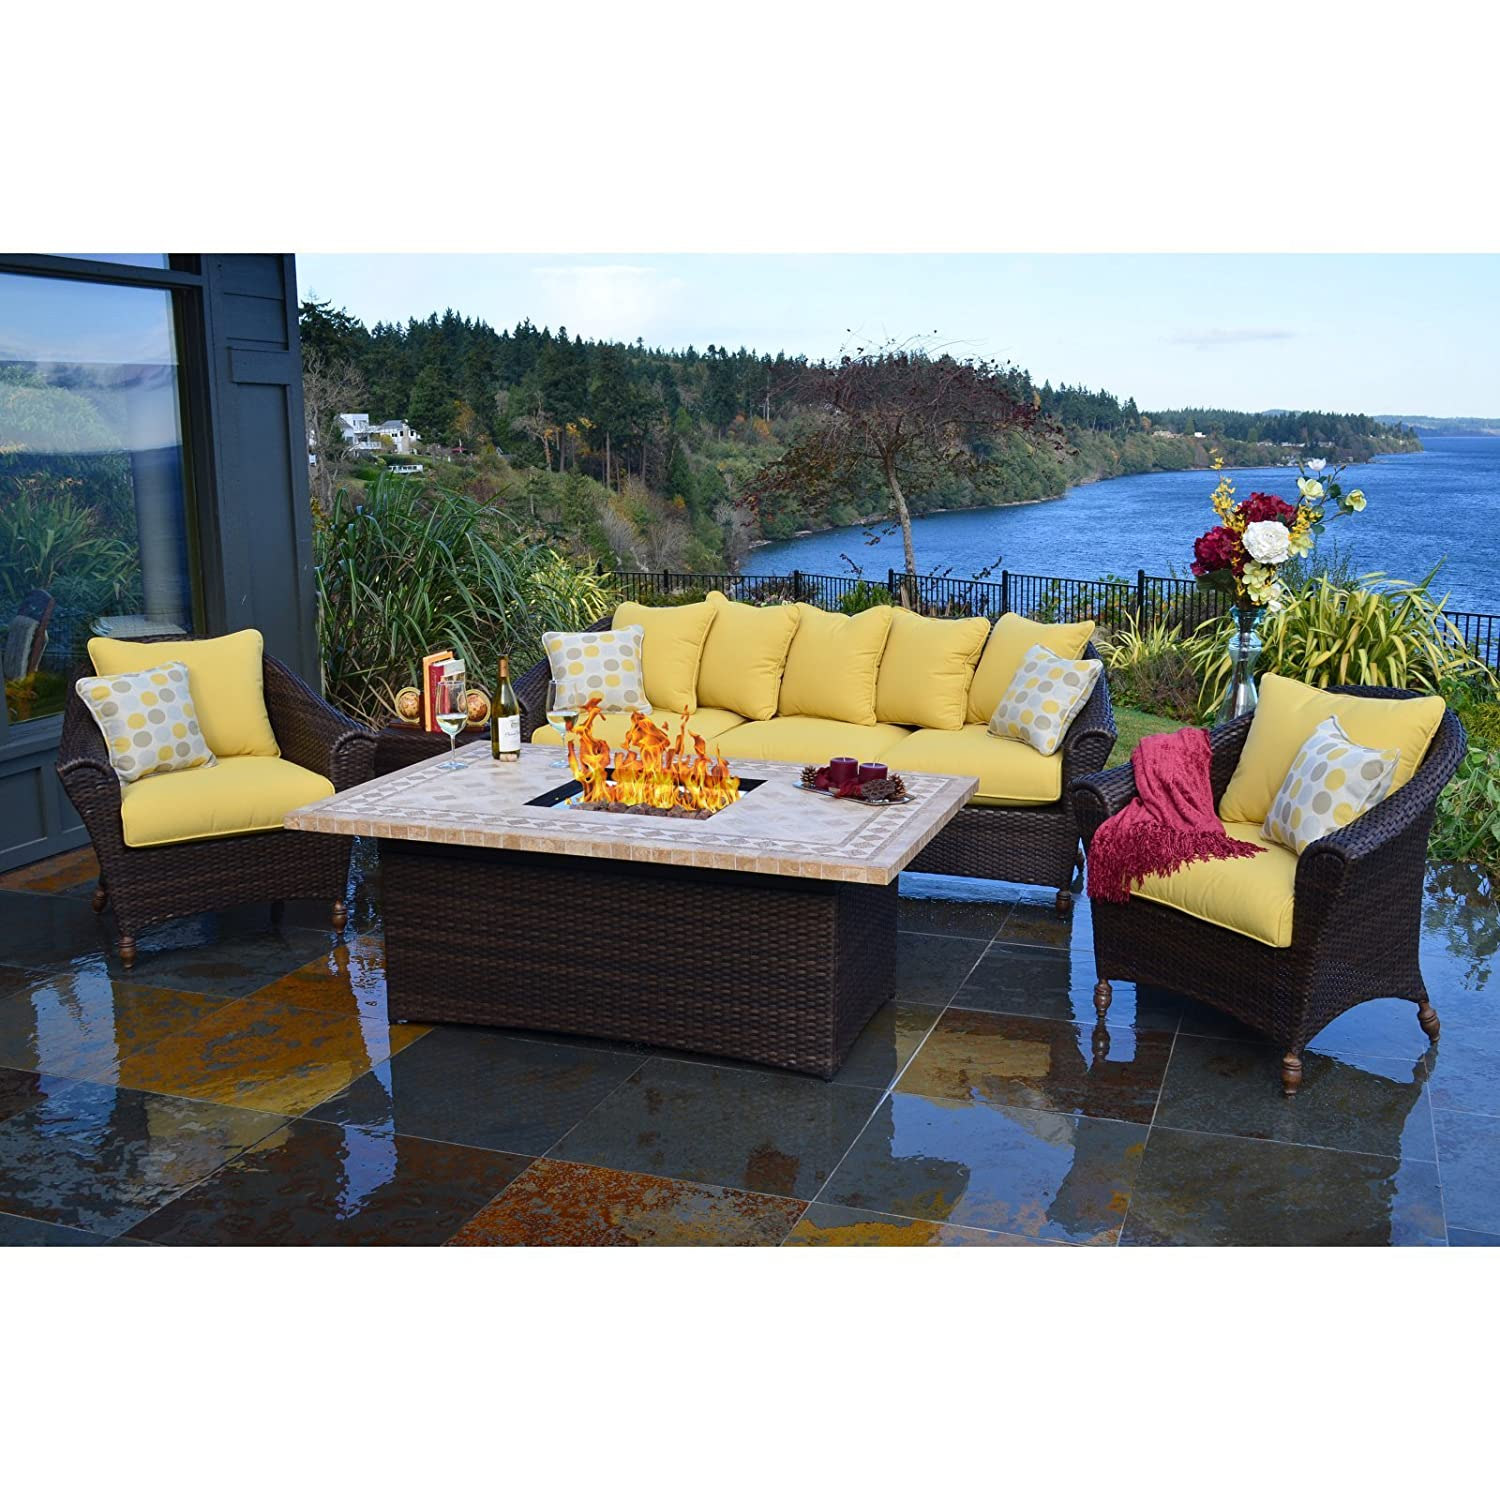 Outdoor Patio Furniture Set With a Fire Pit 8 Designs OUTDOOR